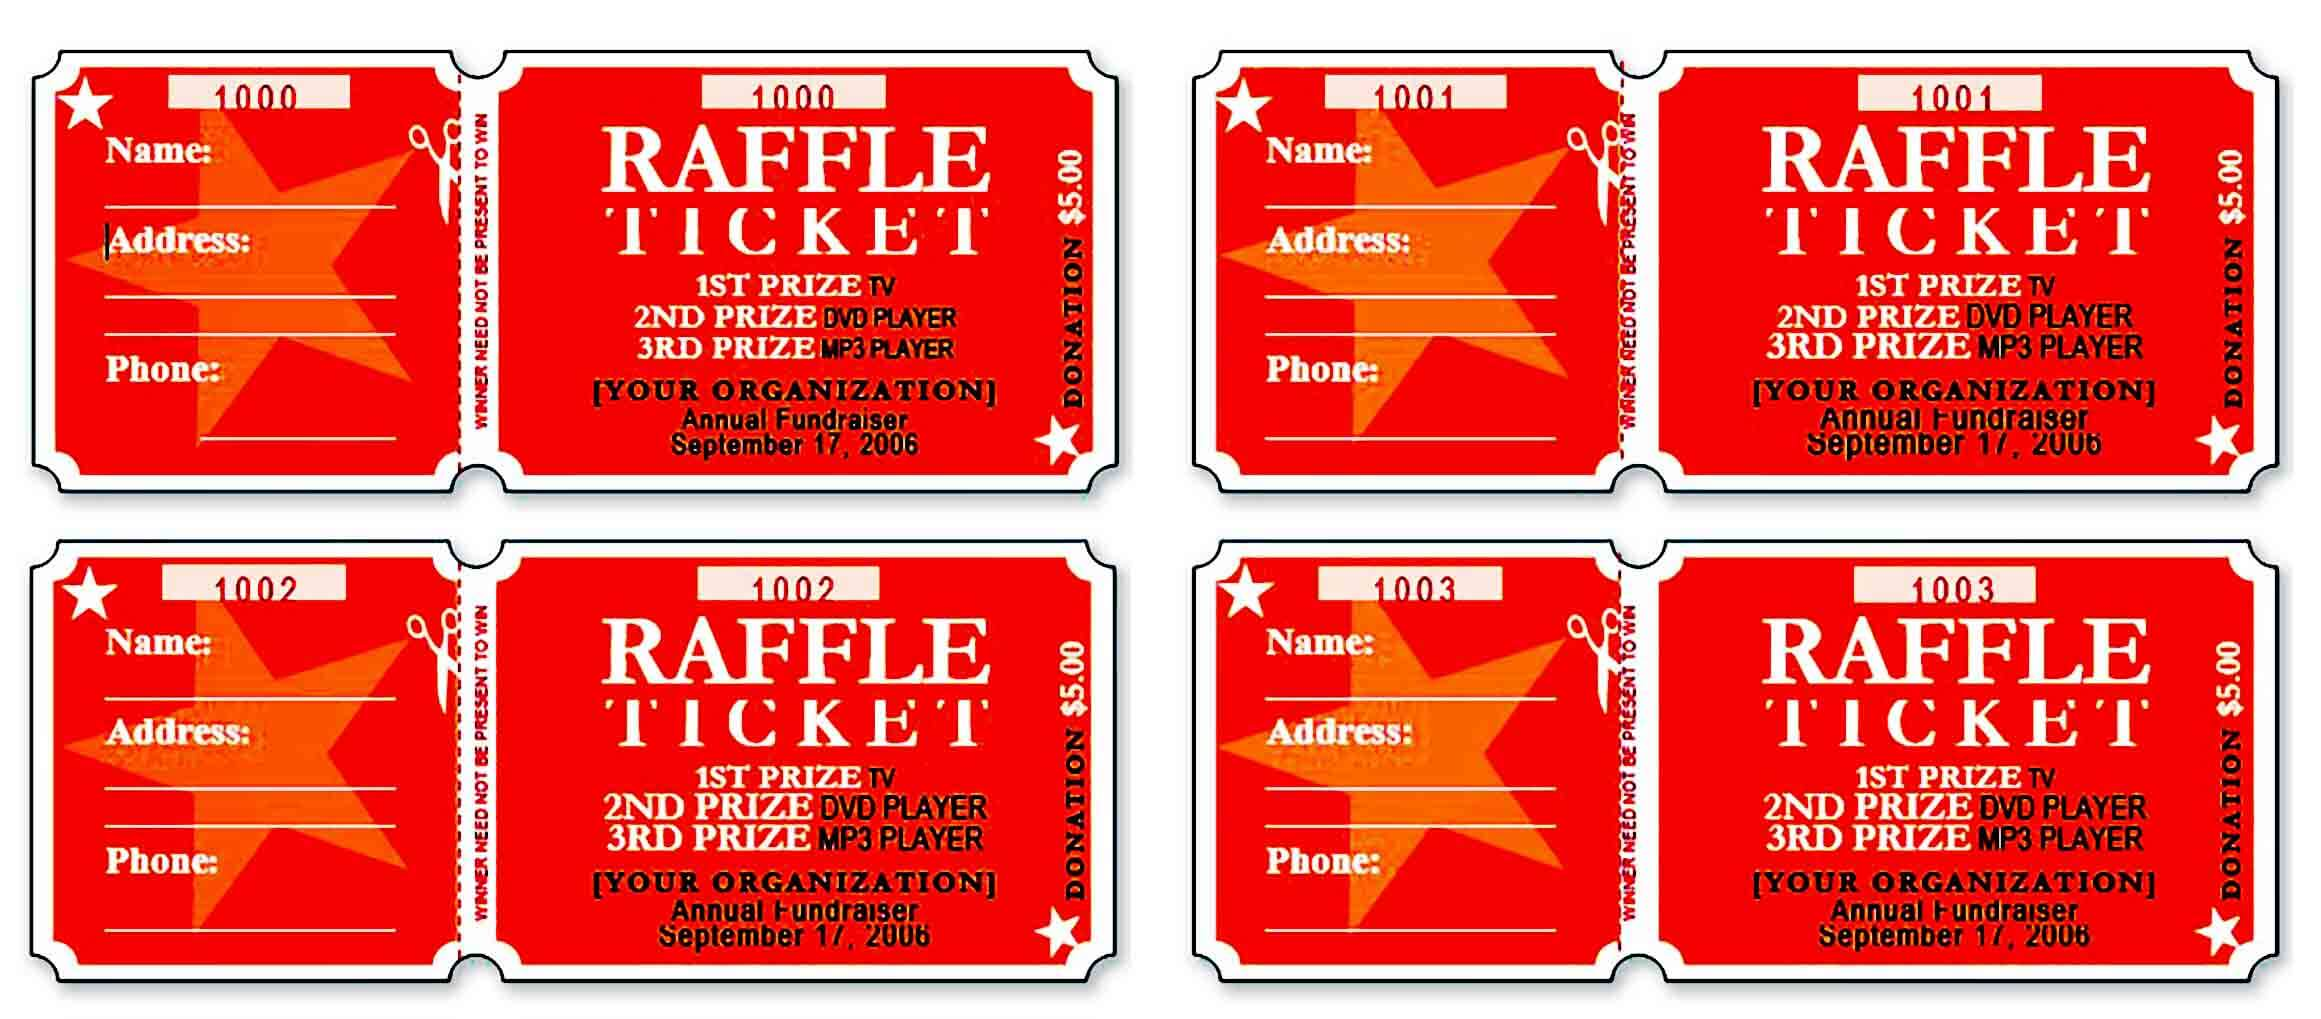 raffle ticket templatess